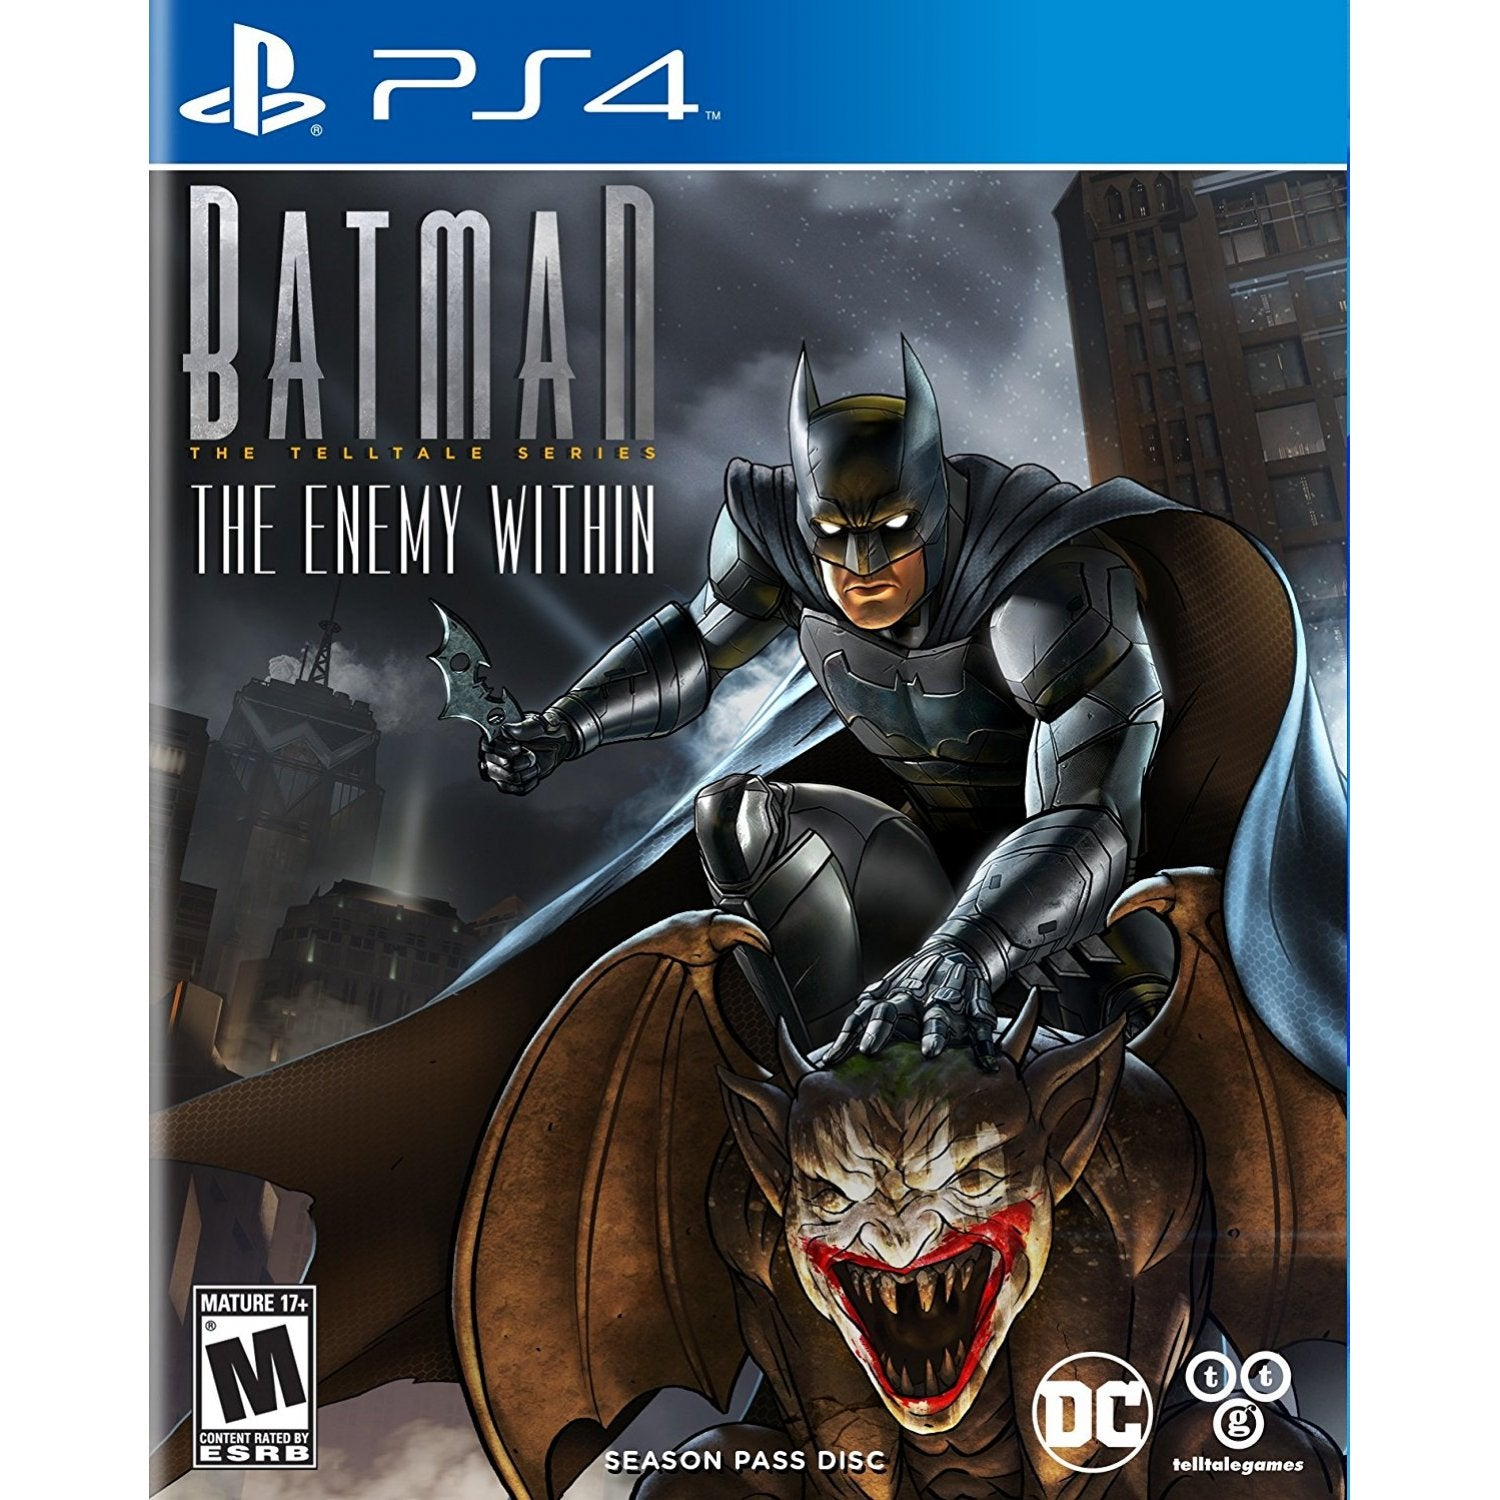 Sony Playstation 4 Tagged Ps4 Page 6 Dishonored Death Of The Outsider Reg 2 Batman Enemy Within Telltale Series